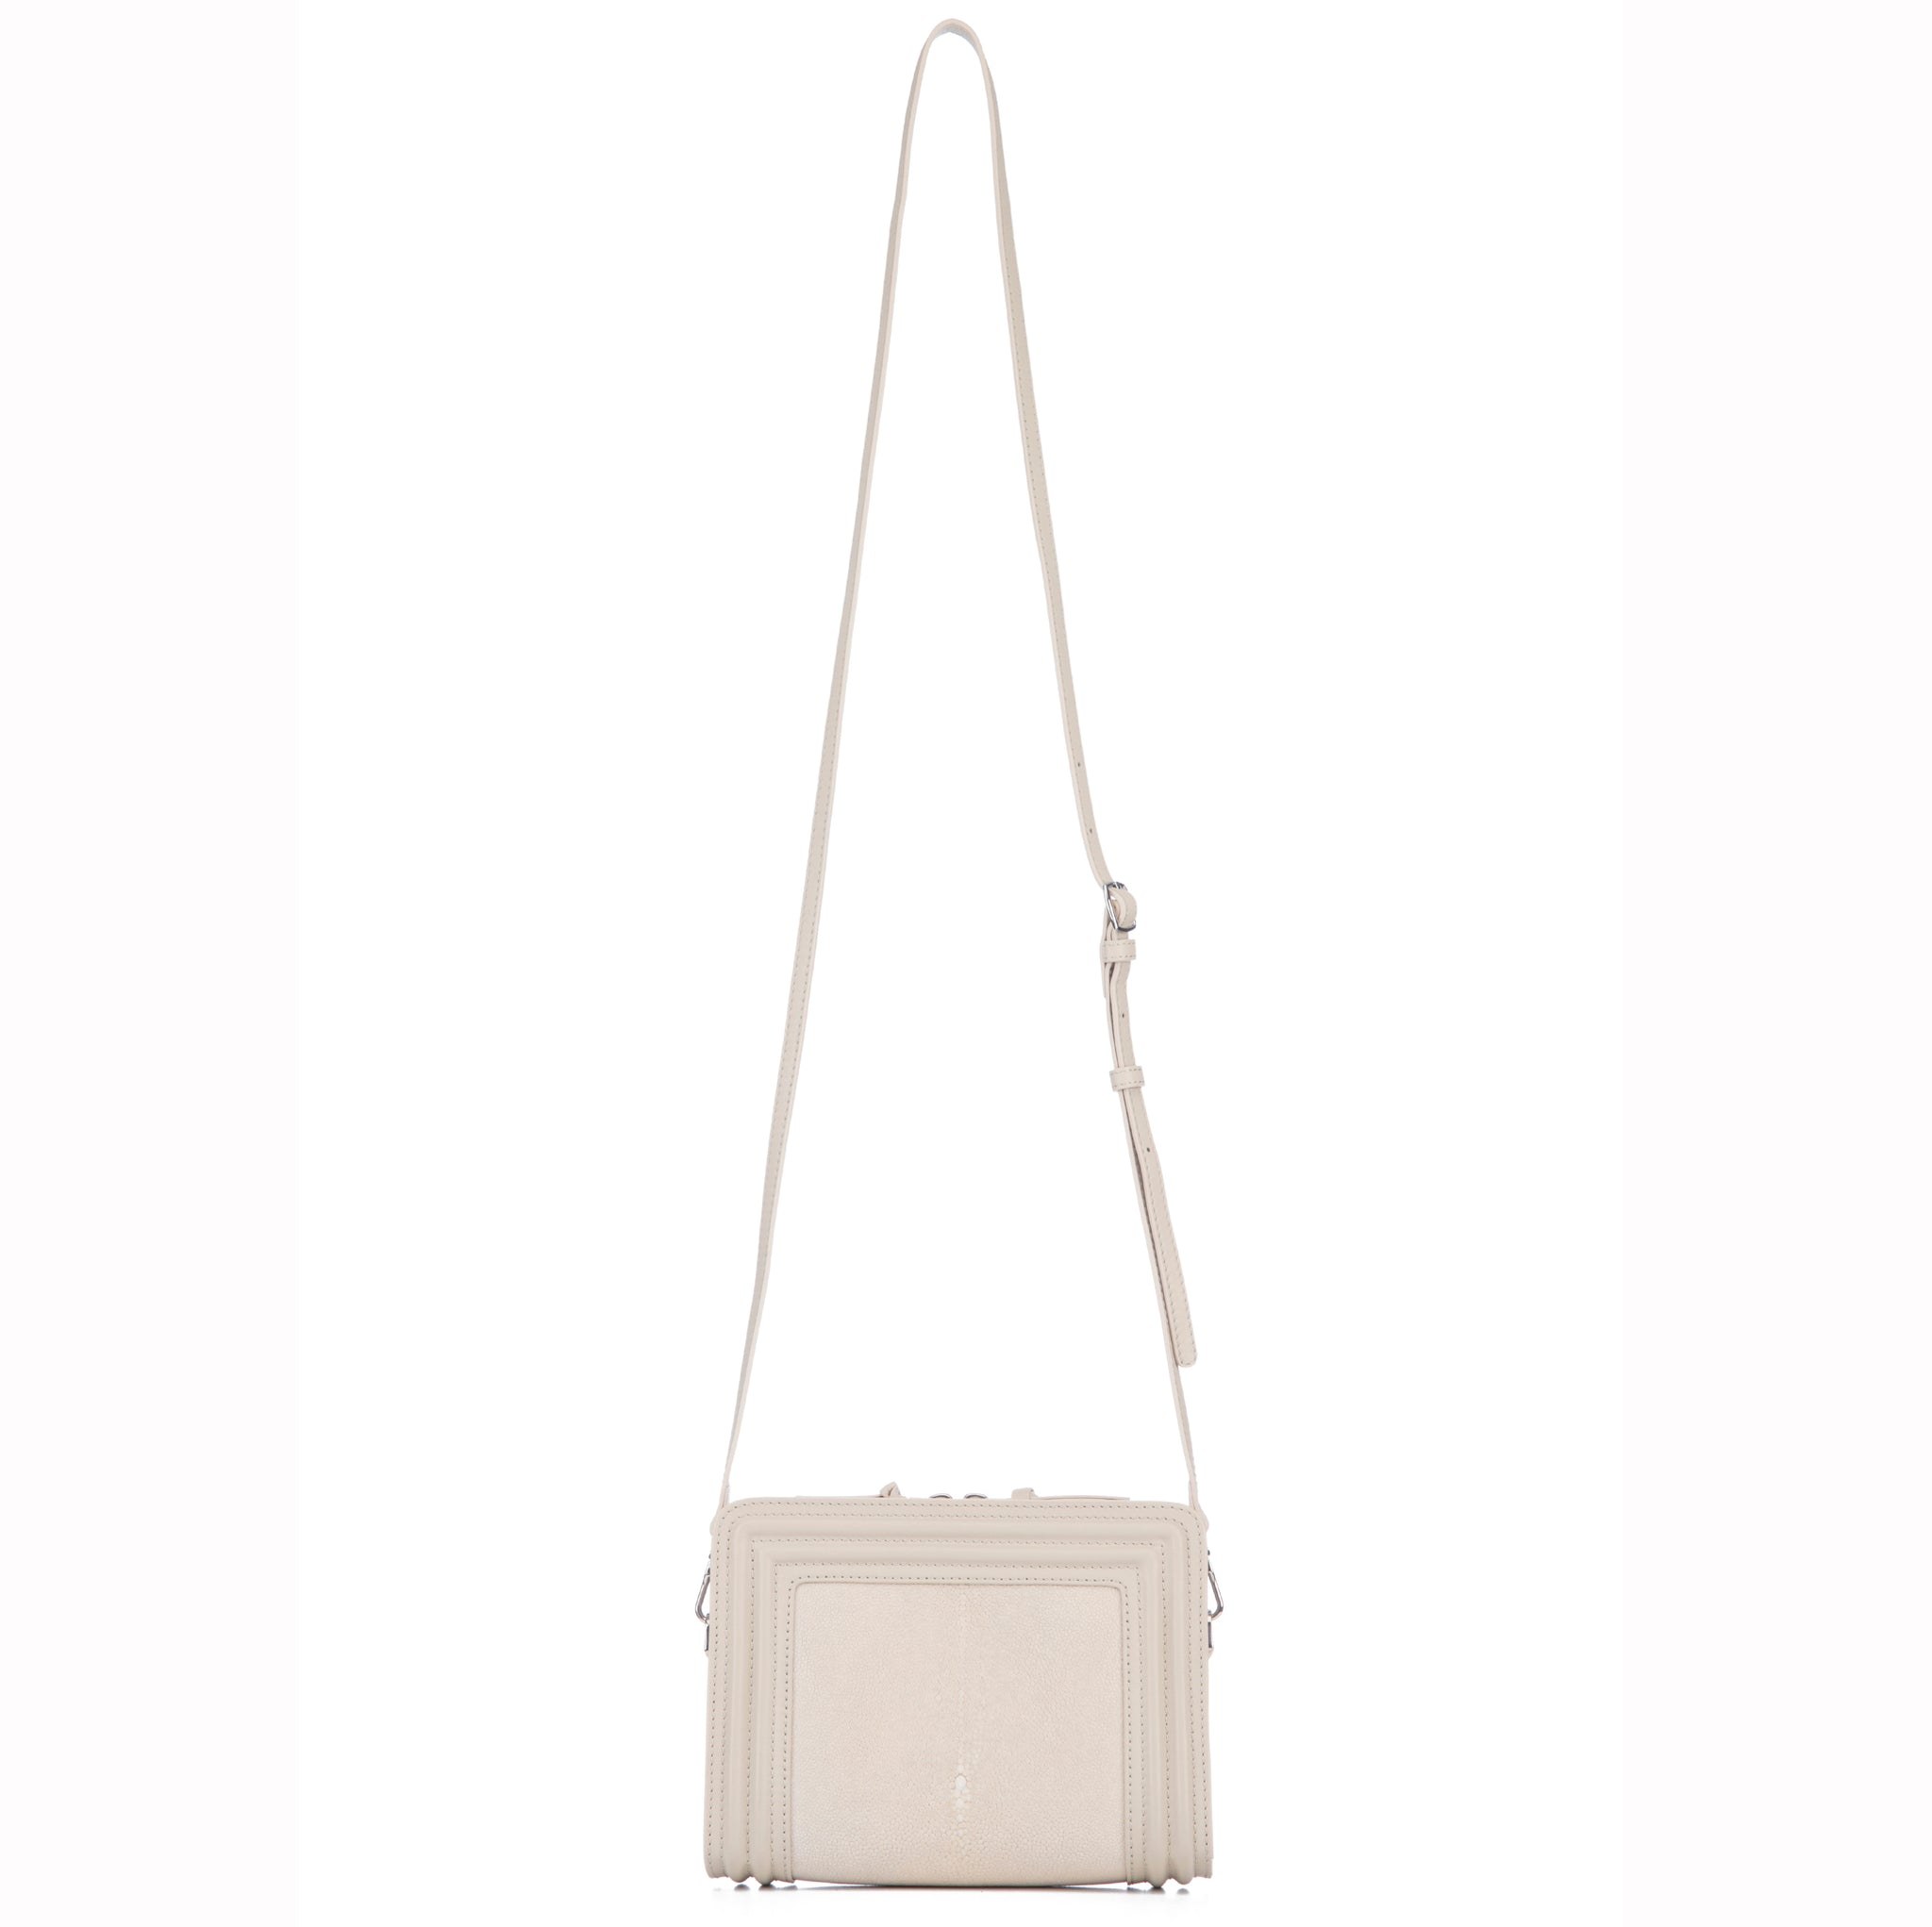 Ecru Corded Leather Frames Wheat Stingray Double Zipper Top Cross Body Bag Shoulder Strap View Nora - Vivo Direct